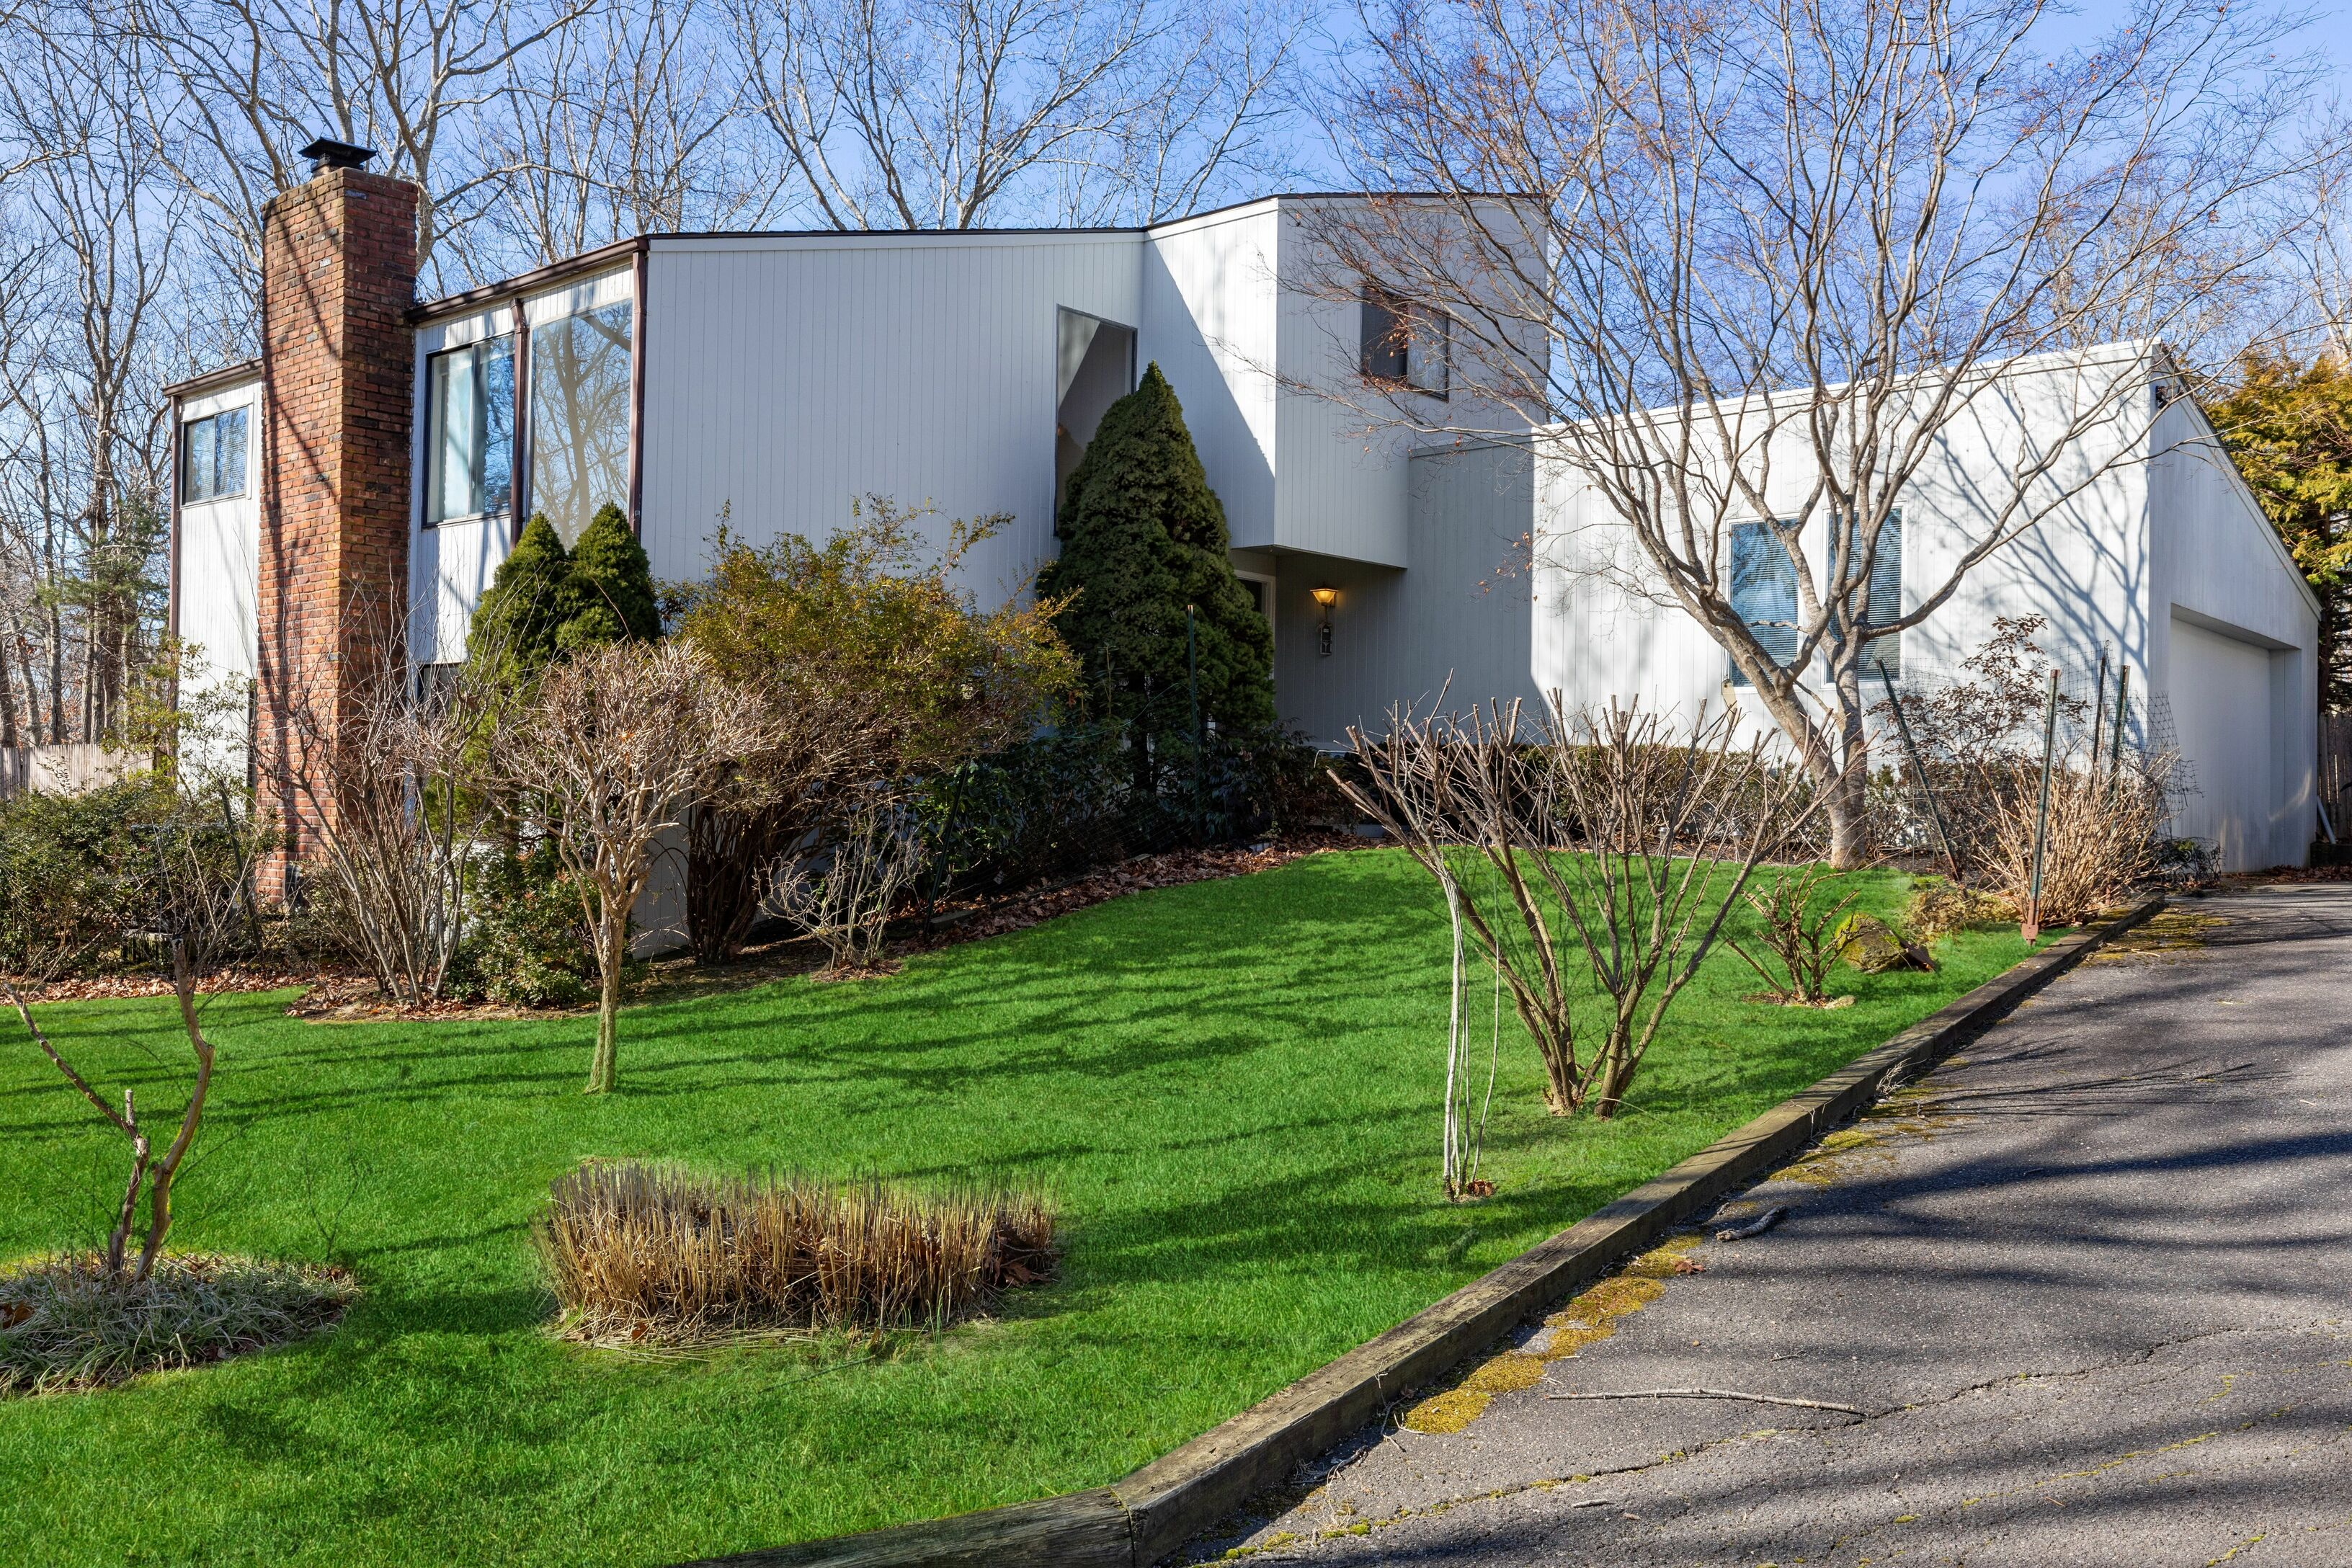 95 Peconic Hills Dr - Southampton North, New York